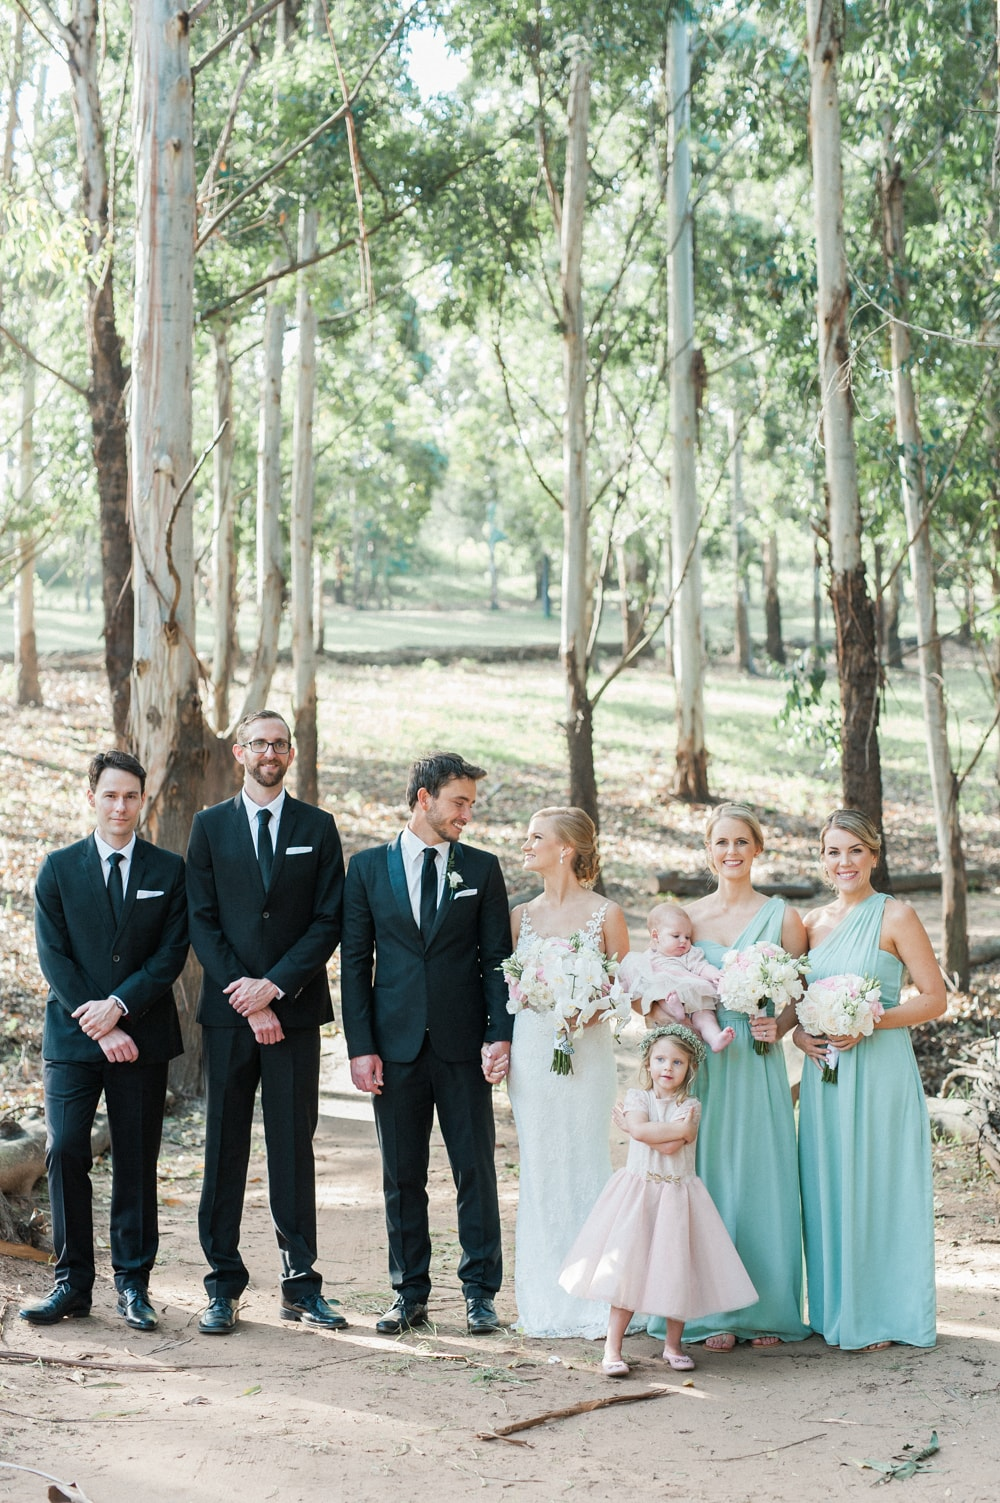 Bridal Party | Image: Bright Girl Photography